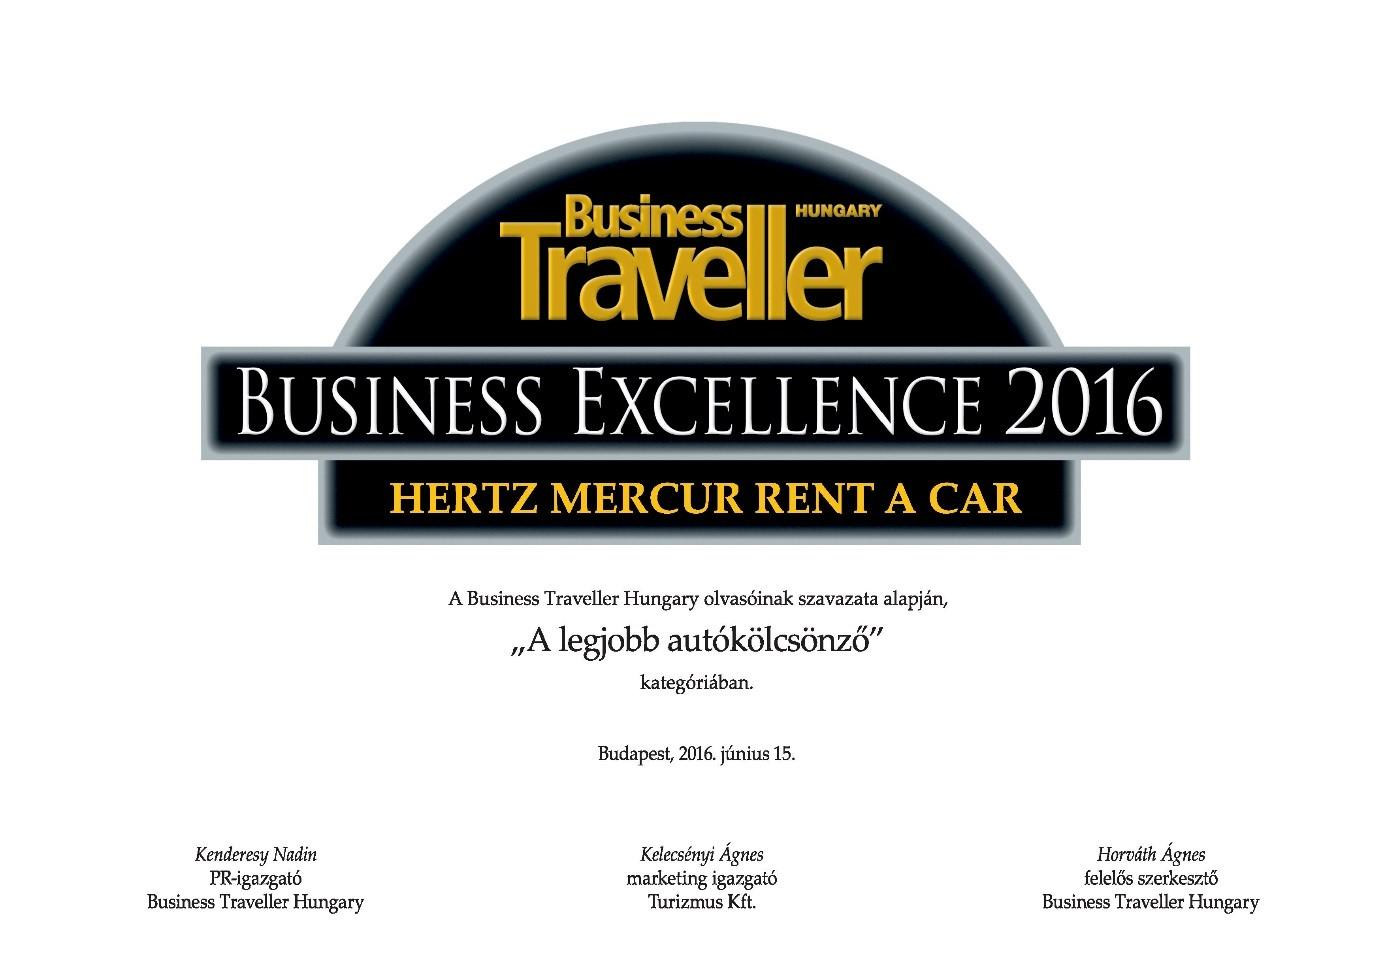 Hungarian Business Excellence Award For Hertz Rent A Car